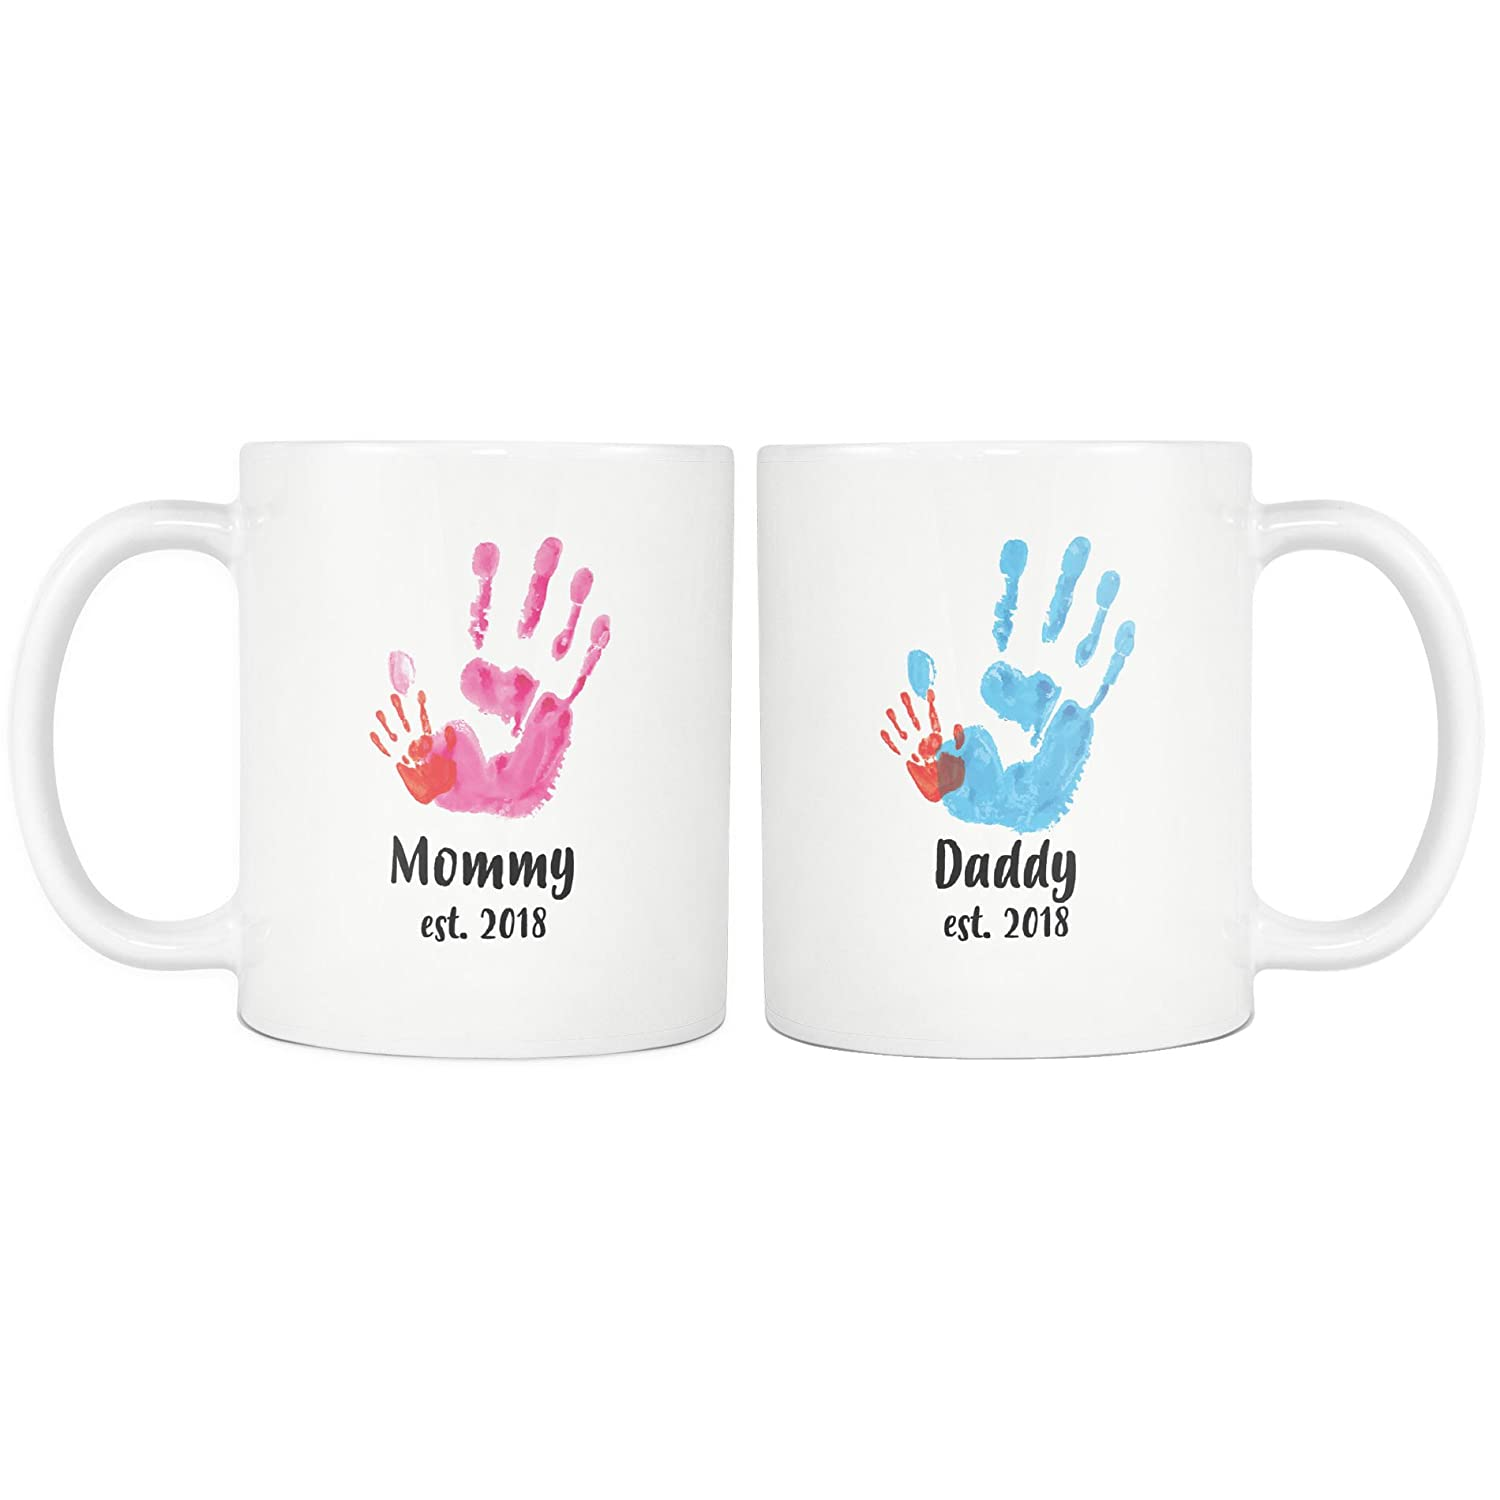 New Mommy and Daddy Mug Set - New Mom and Dad Matching Mugs - Mom Dad Est 2018 Mugs - Baby Shower Gift - 11oz Coffee Mugs Cups by Monkey Duo